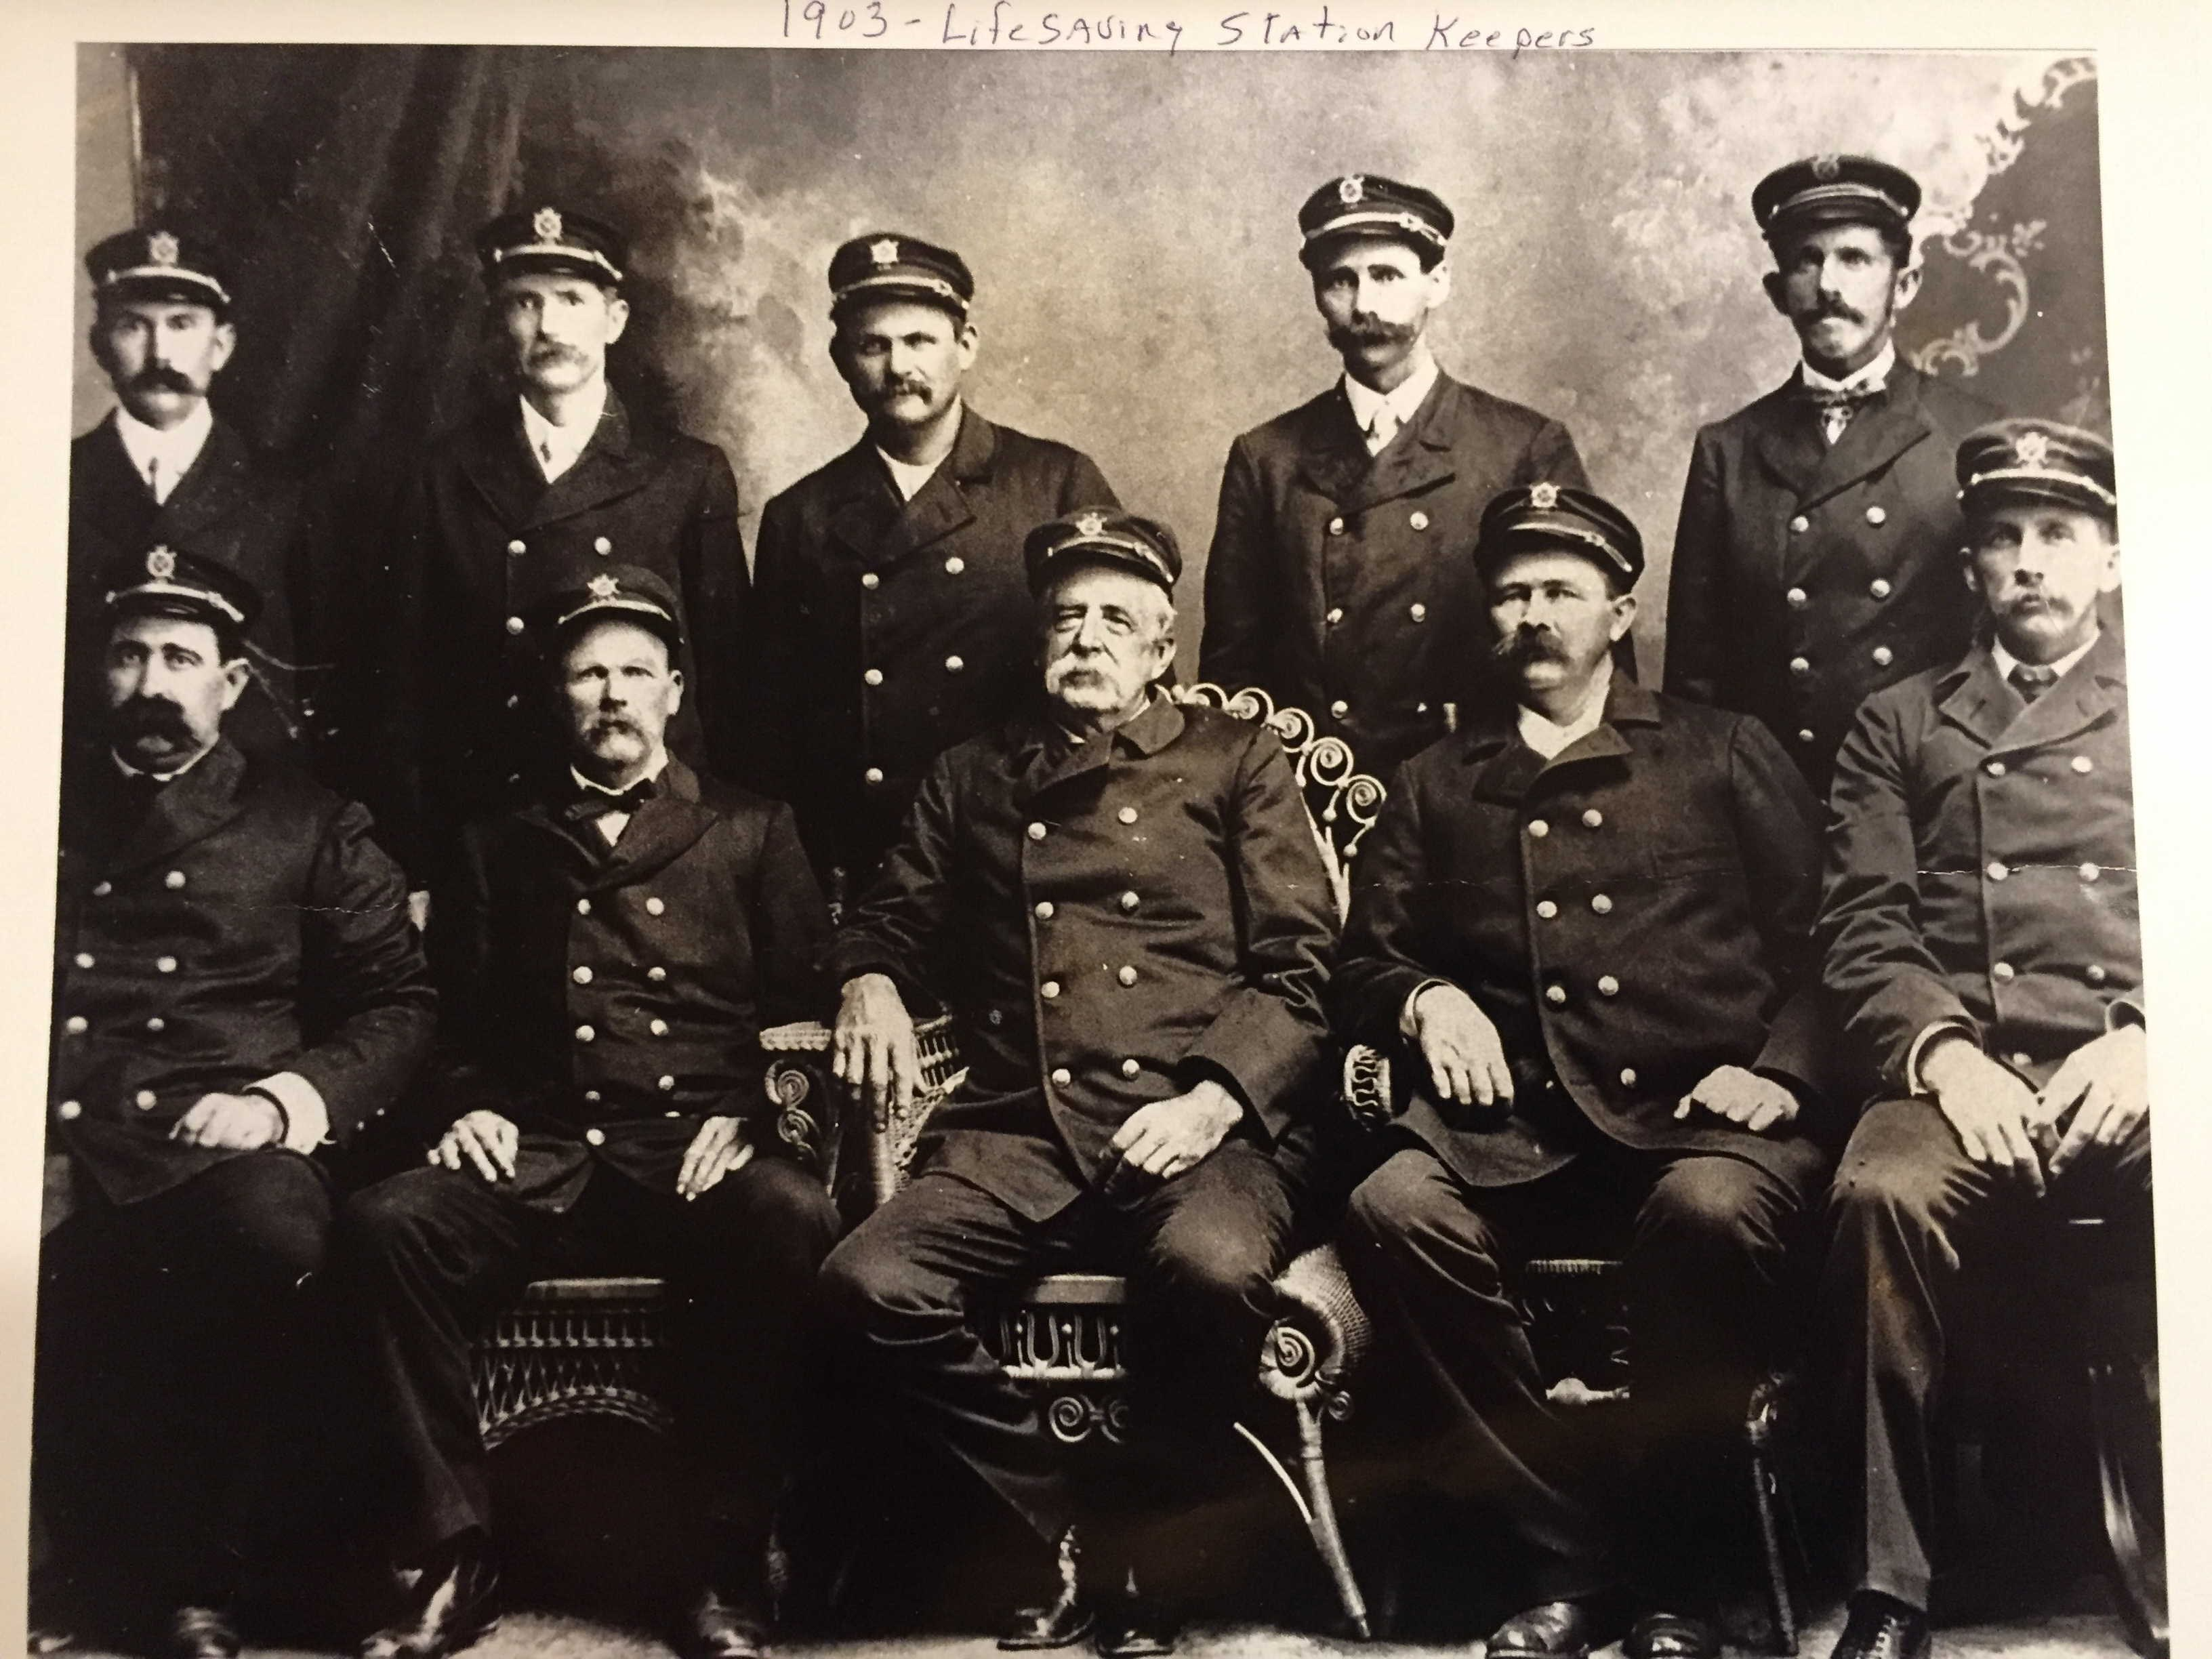 1903 Lifesaving Station Keepers